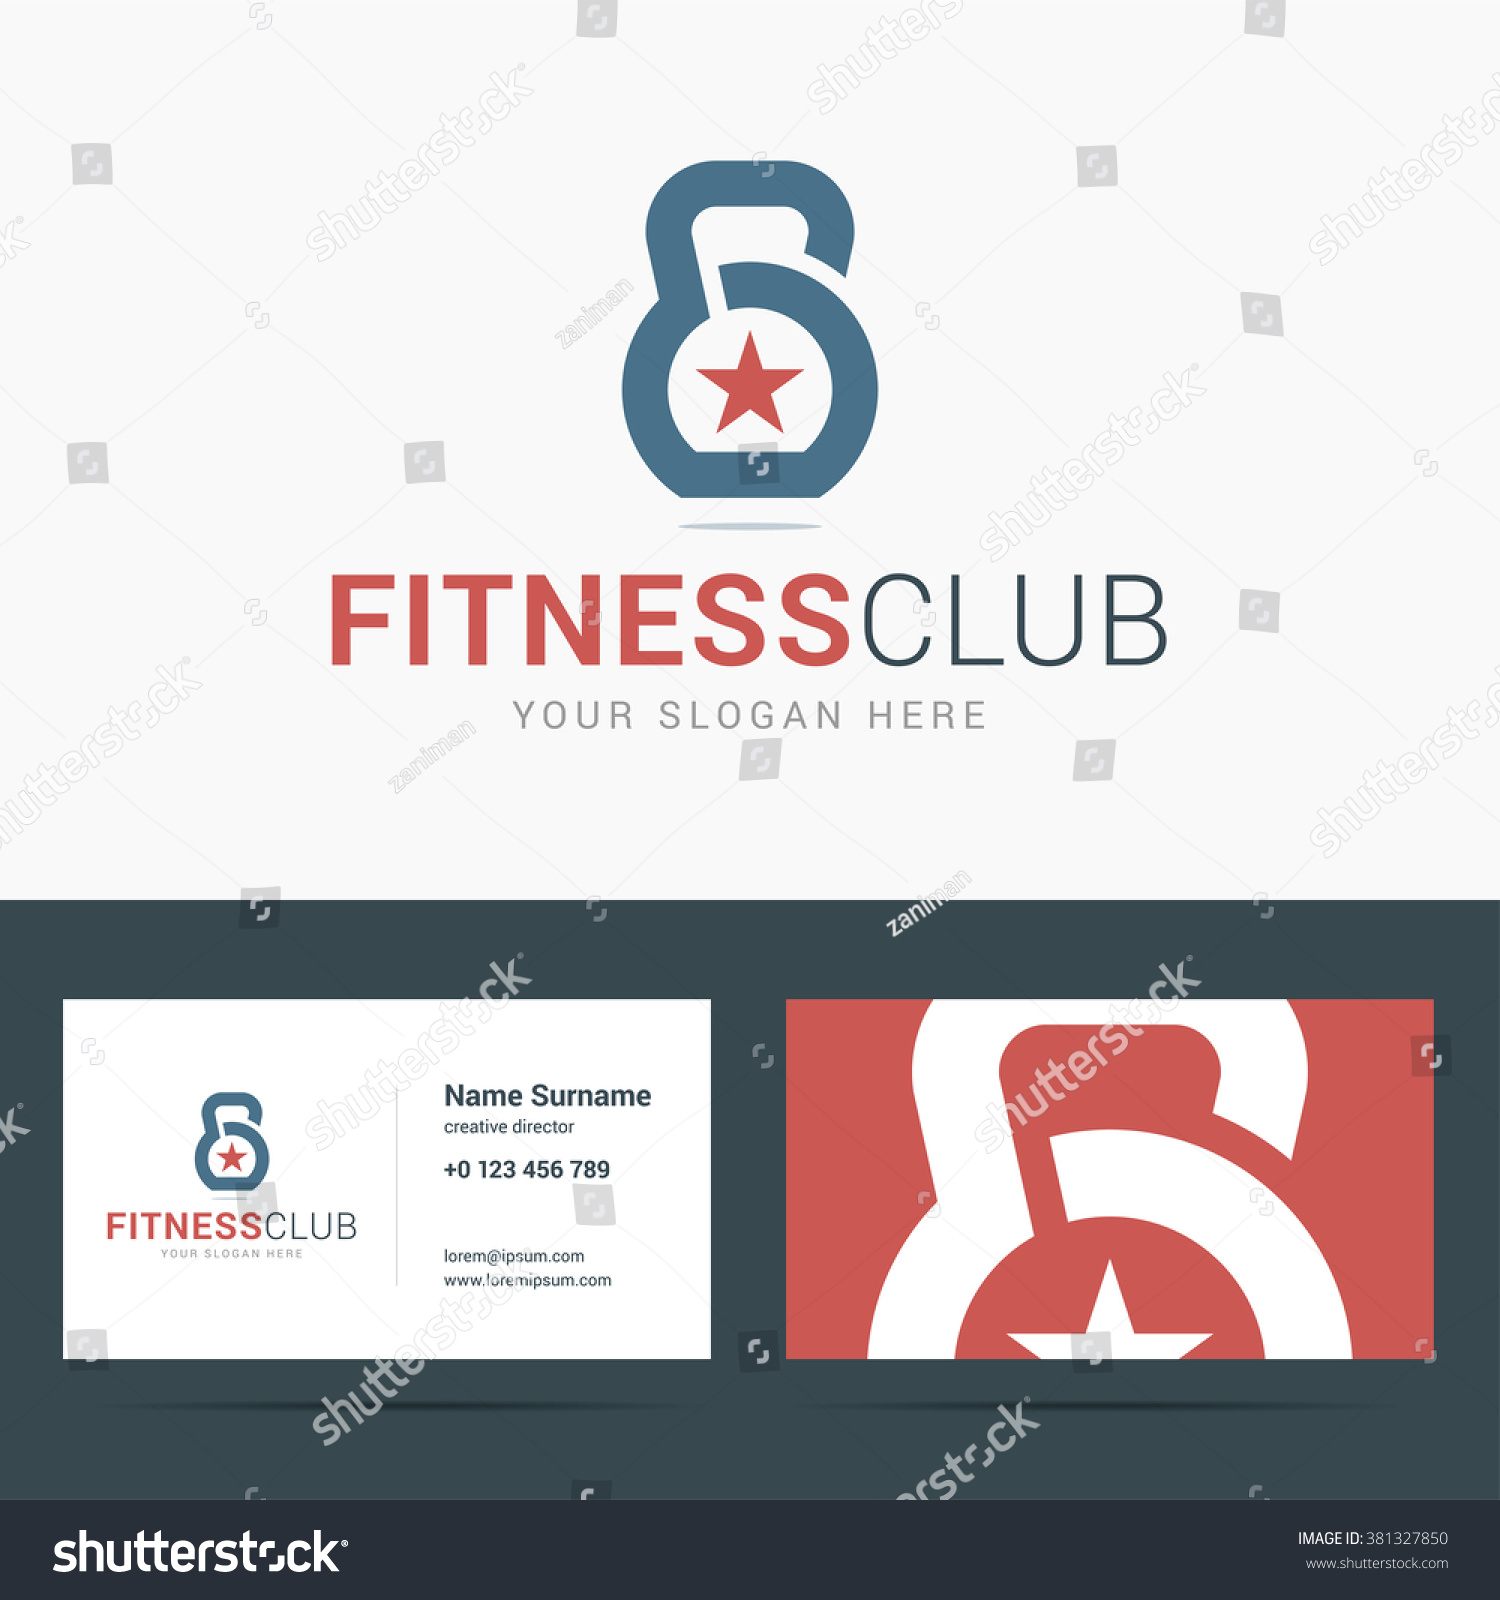 Logo Business Card Template Fitness Club Stock Vector